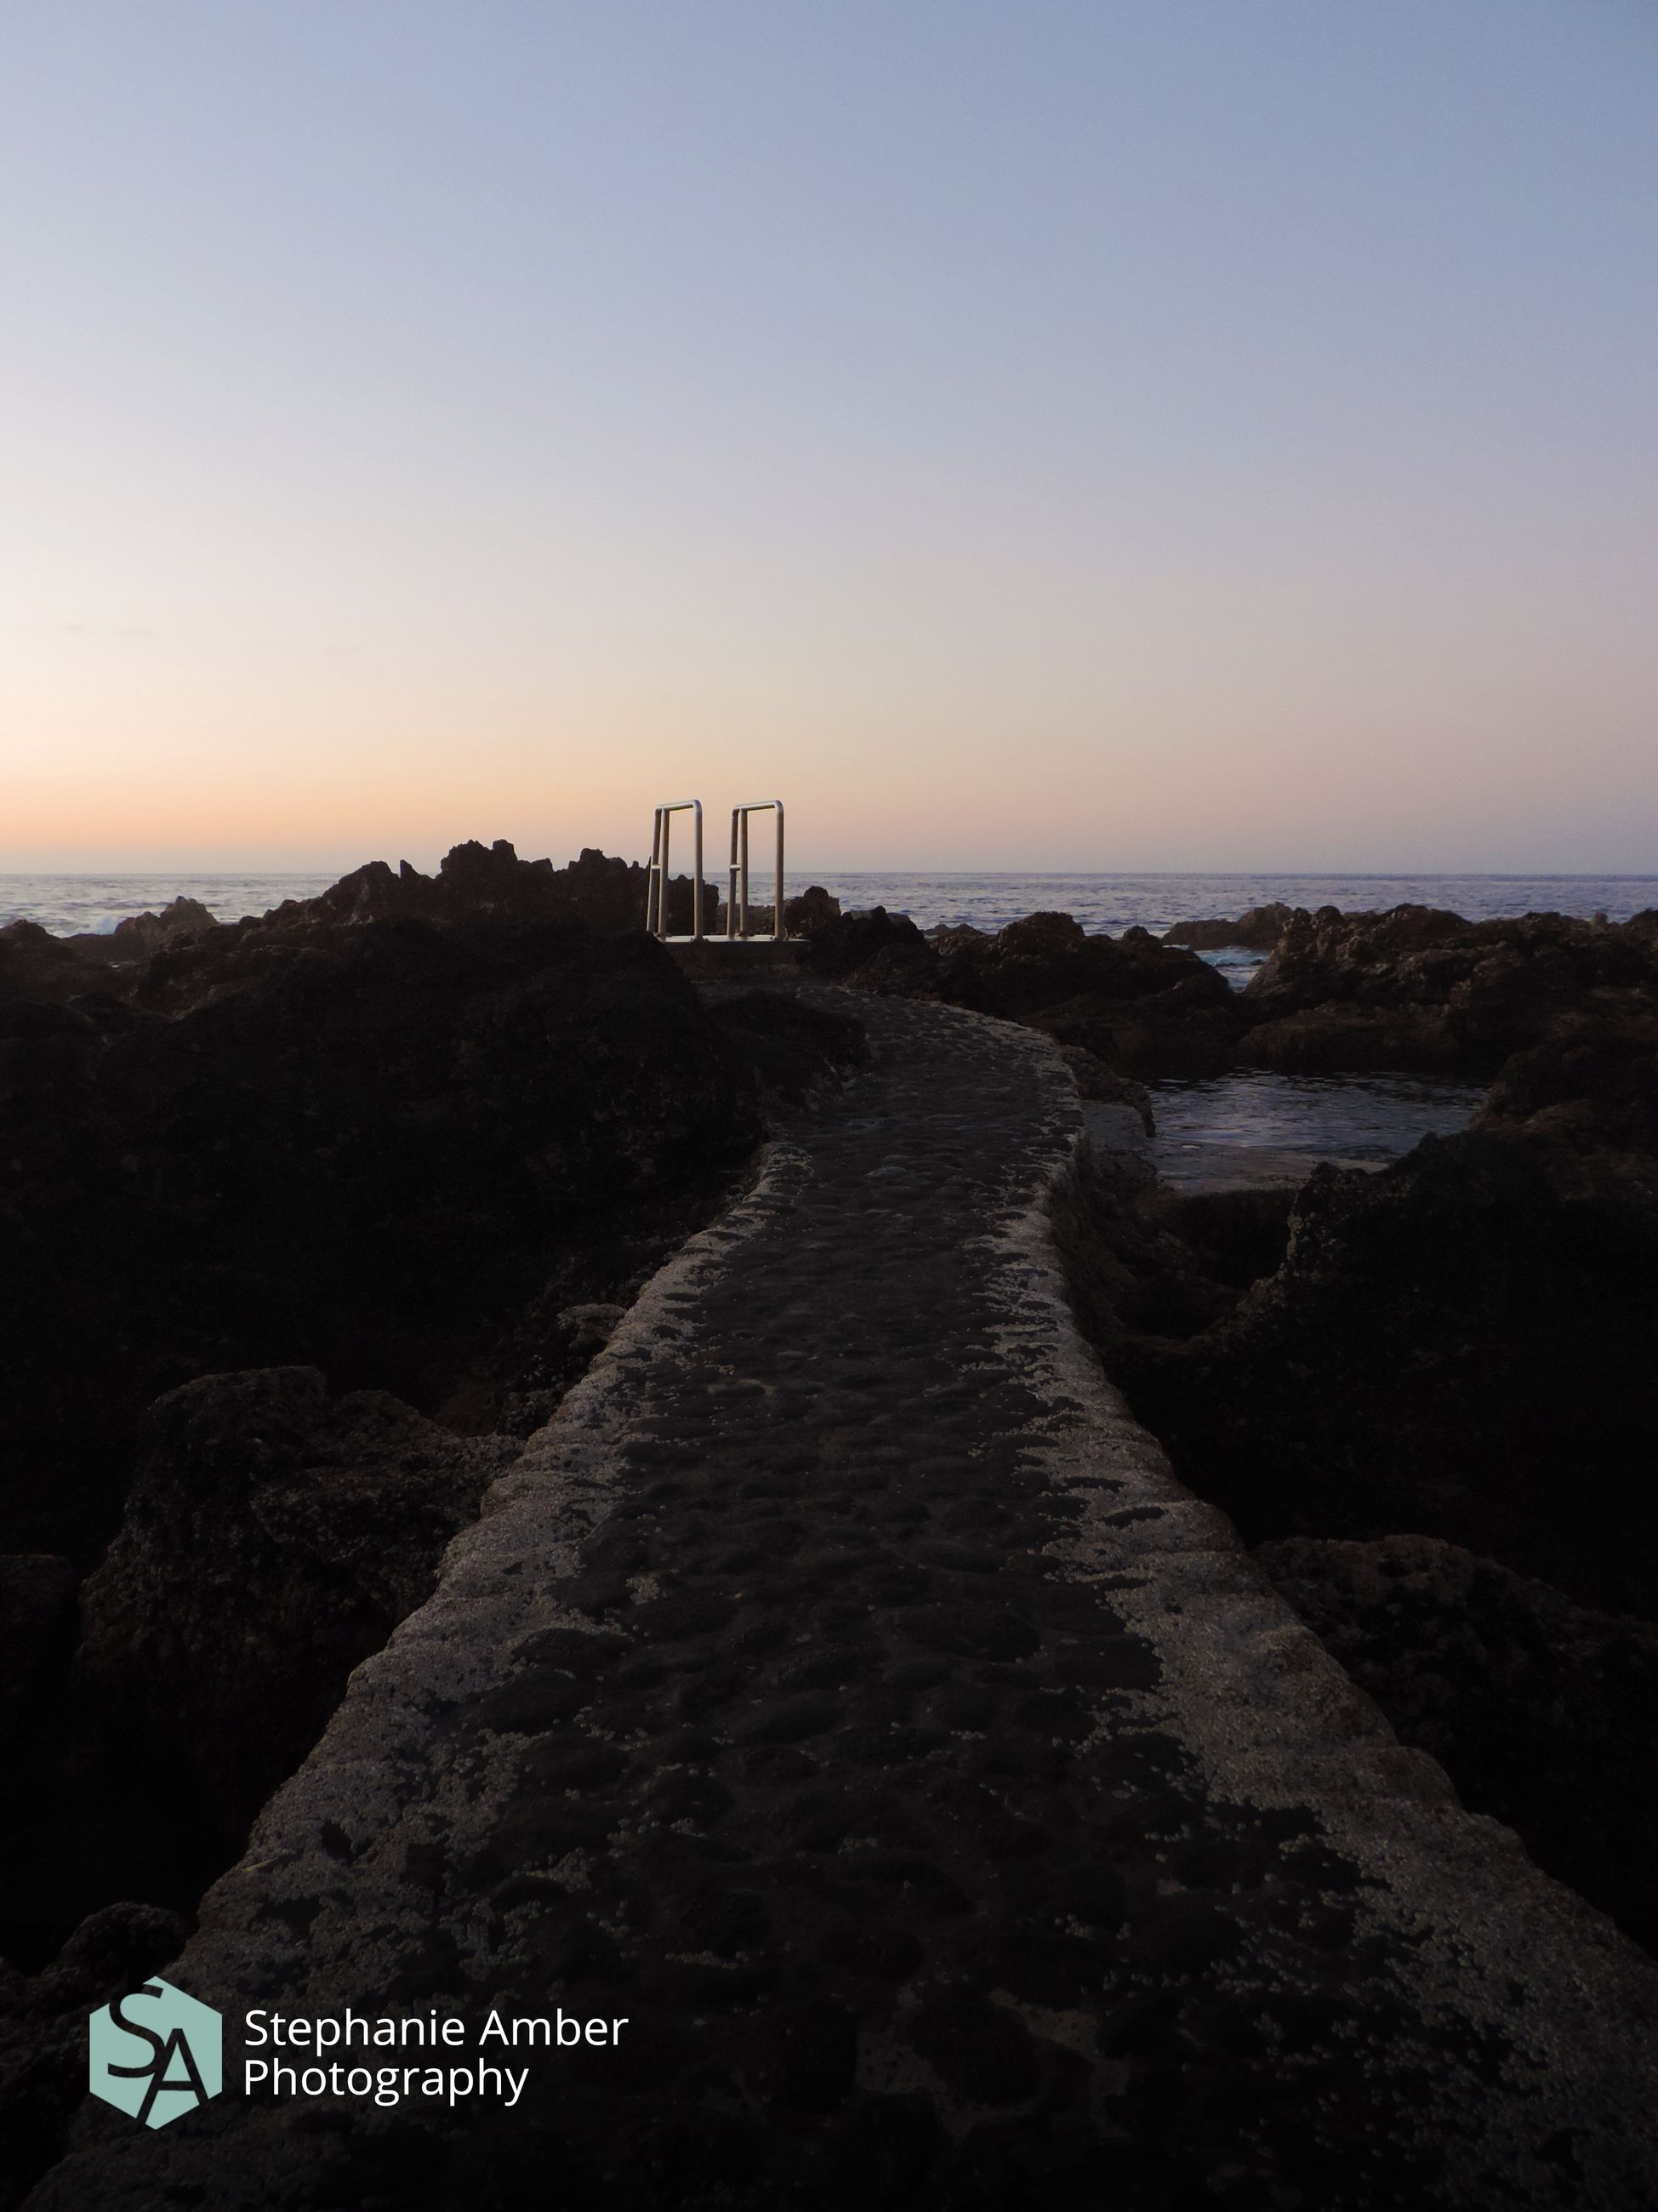 sky, sunset, scenics - nature, sea, nature, beauty in nature, water, architecture, direction, tranquil scene, built structure, copy space, no people, tranquility, text, the way forward, clear sky, rock, building exterior, horizon over water